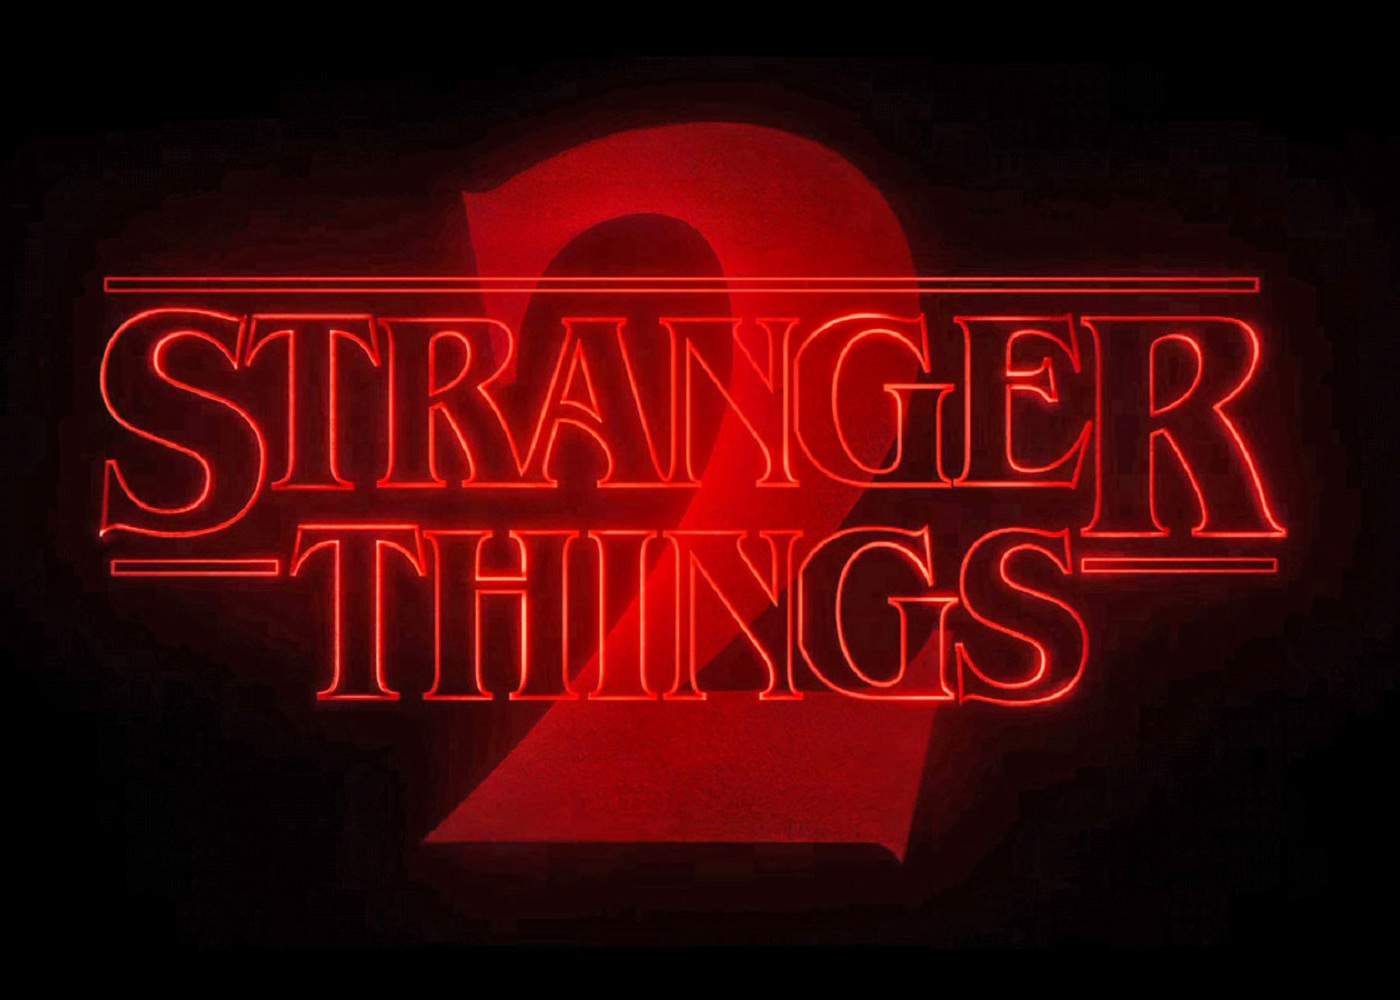 Stranger Things Trailer Turns the World Upside Down